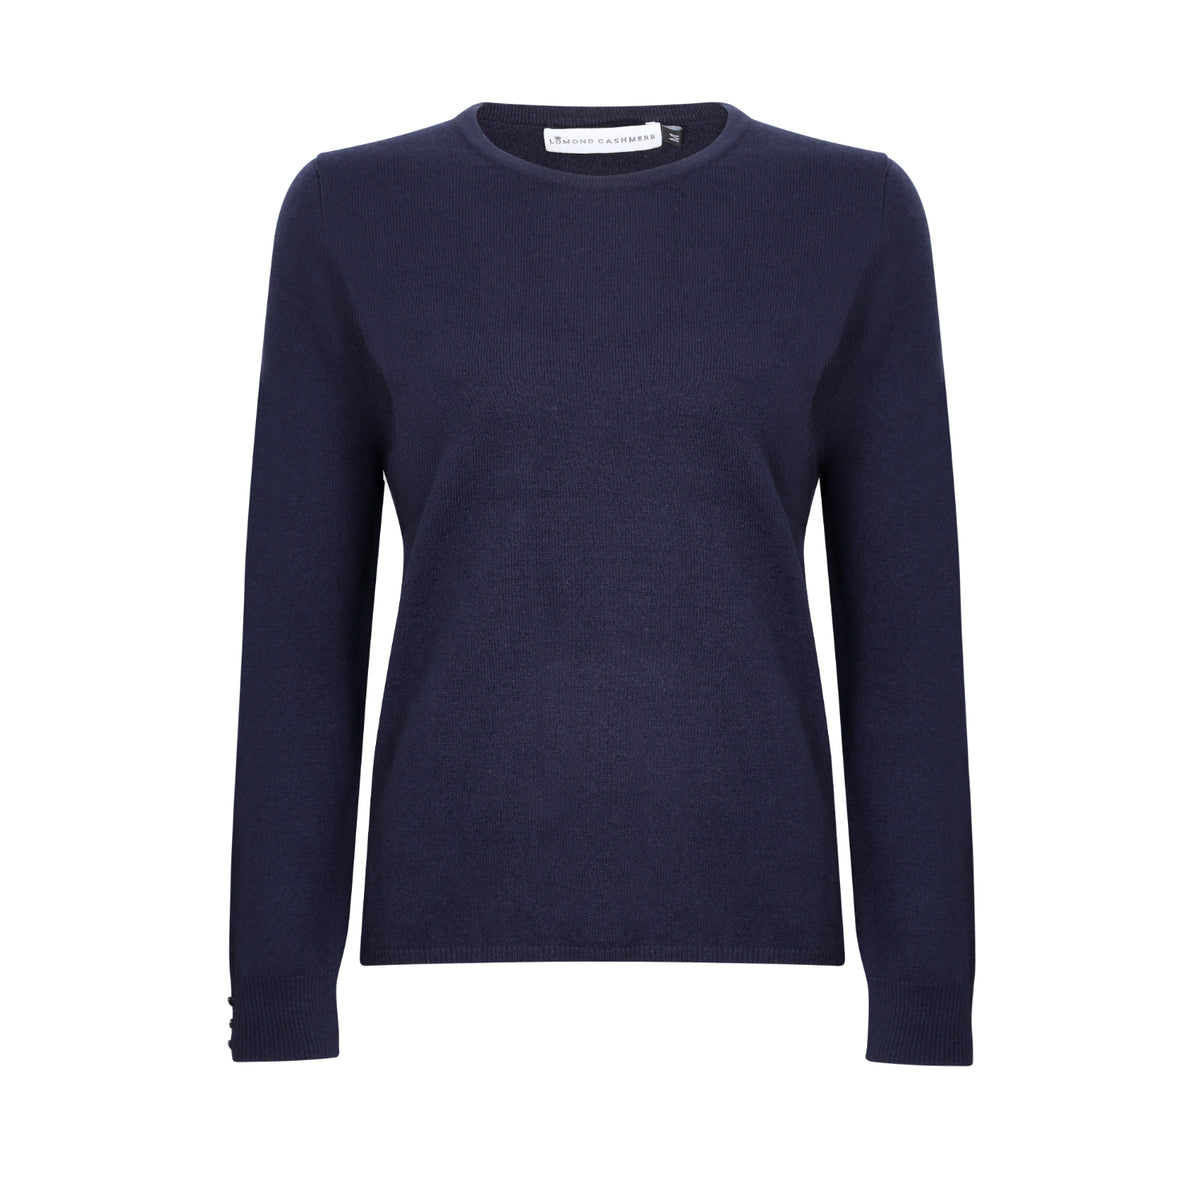 Lomond Cashmere | Ladies 2-Ply Cashmere Round Neck | Navy Blue | Shop now at The Cashmere Choice | London